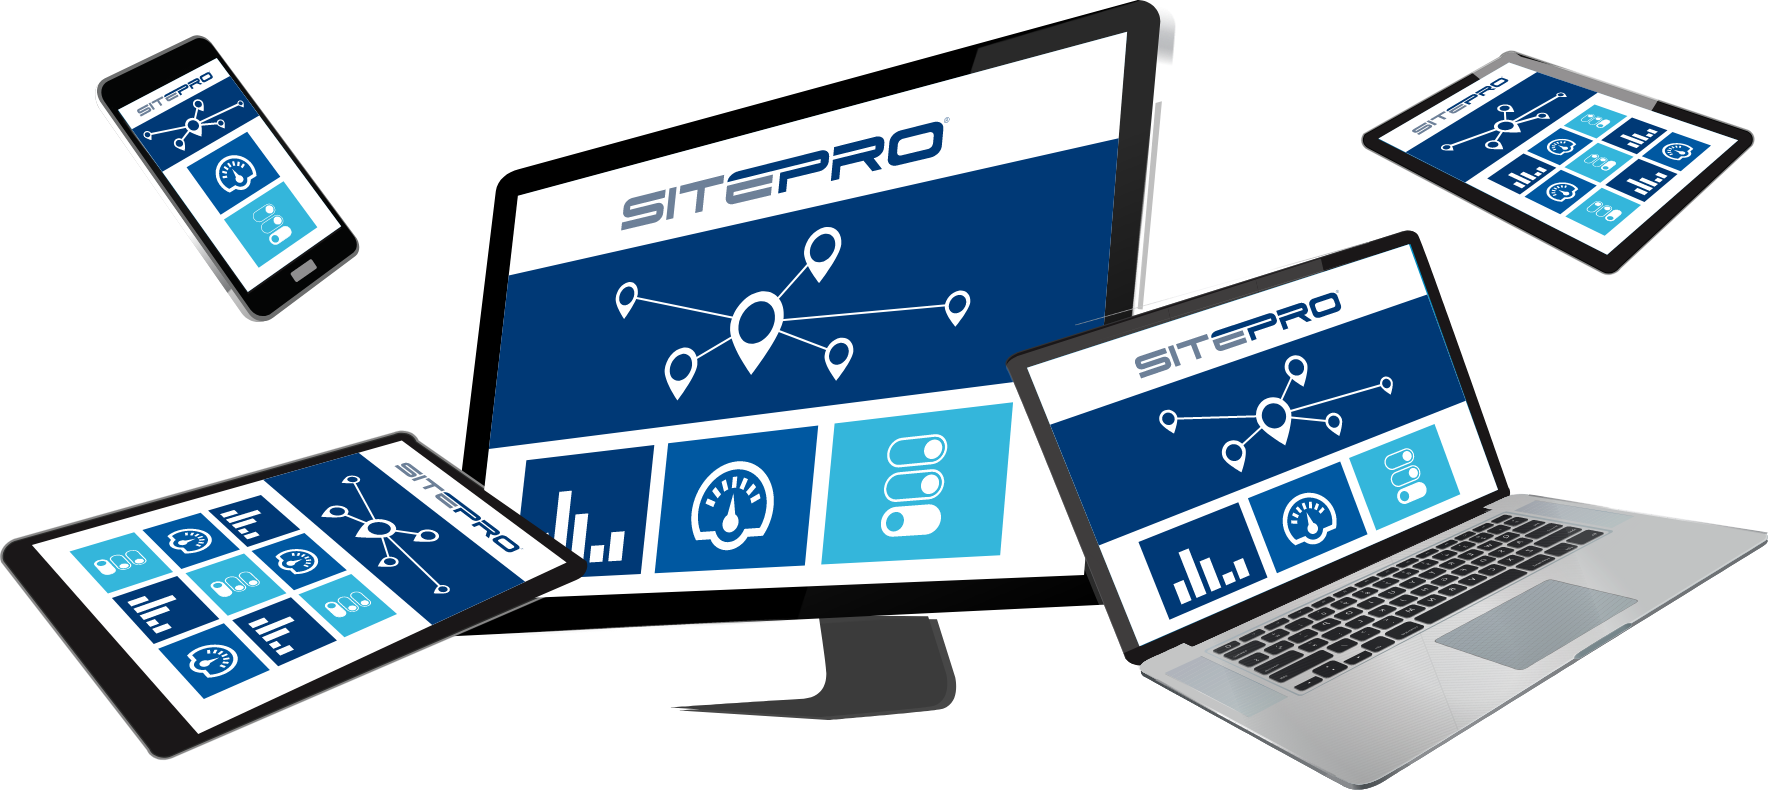 SitePro Home Page_Computer College